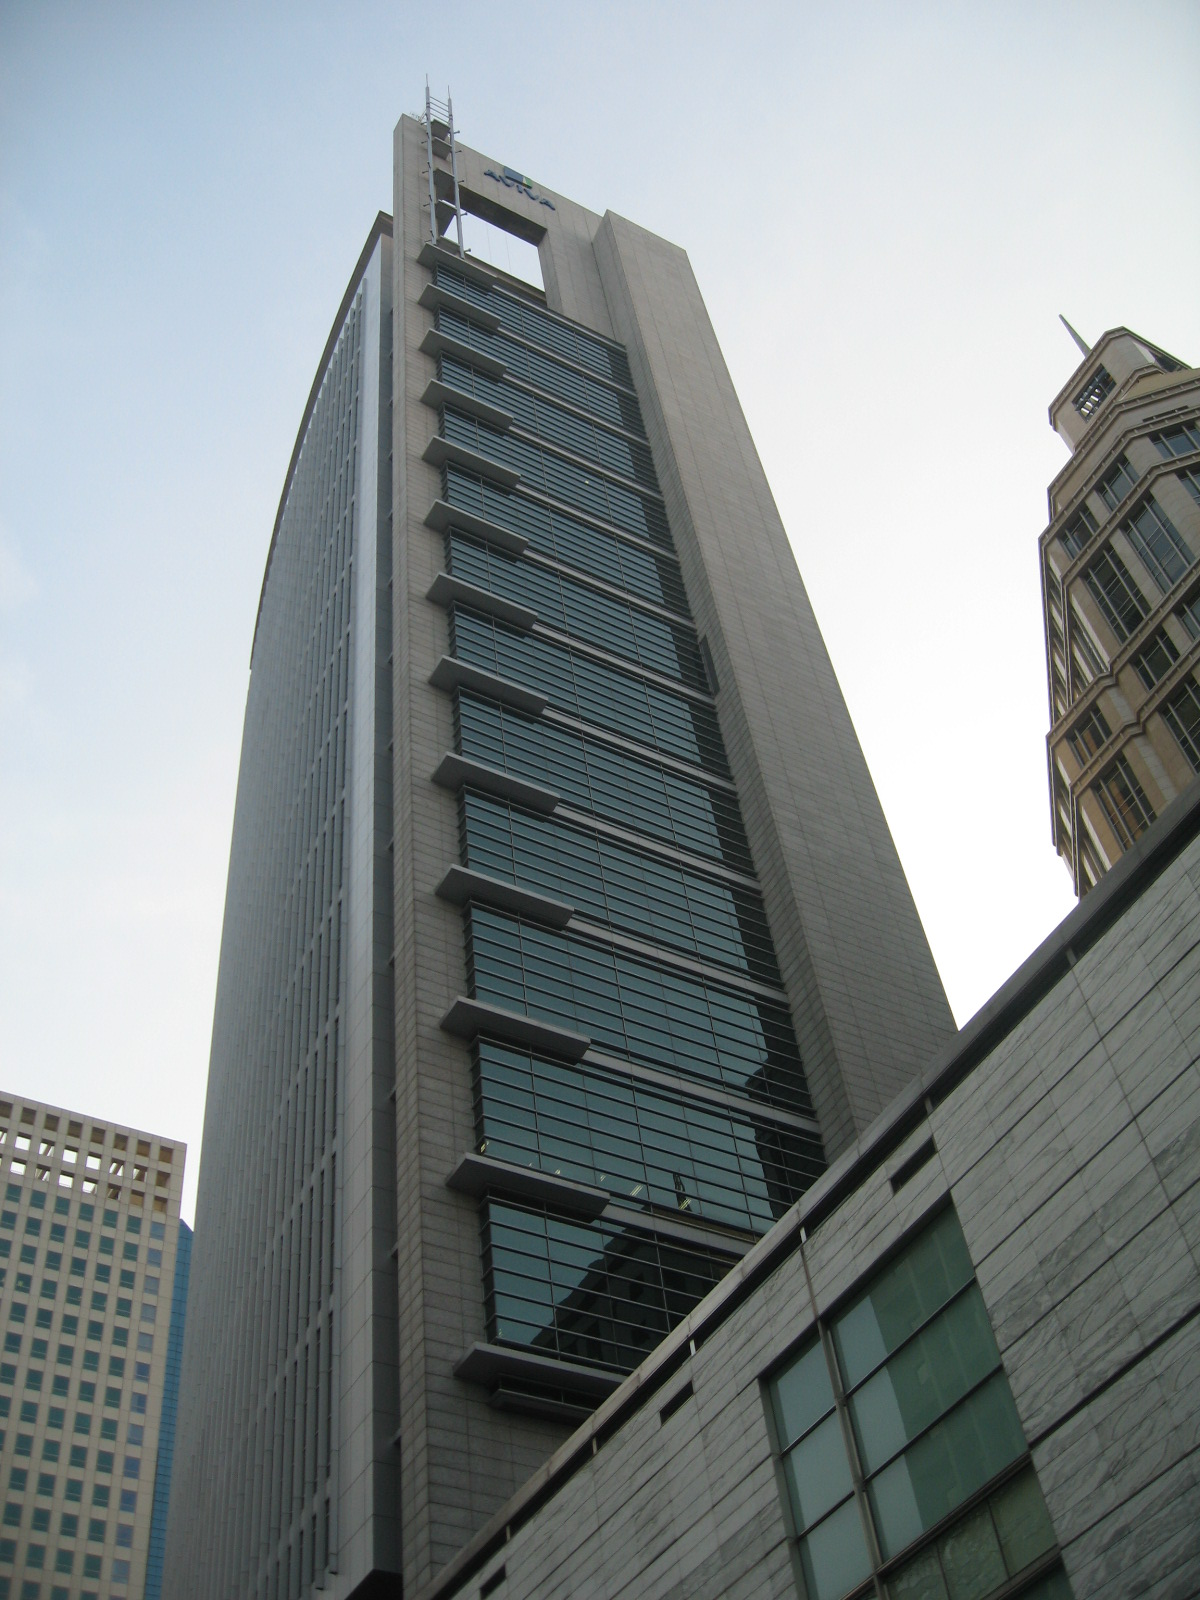 File:SGX Centre Two.JPG - Wikipedia, the free encyclopedia